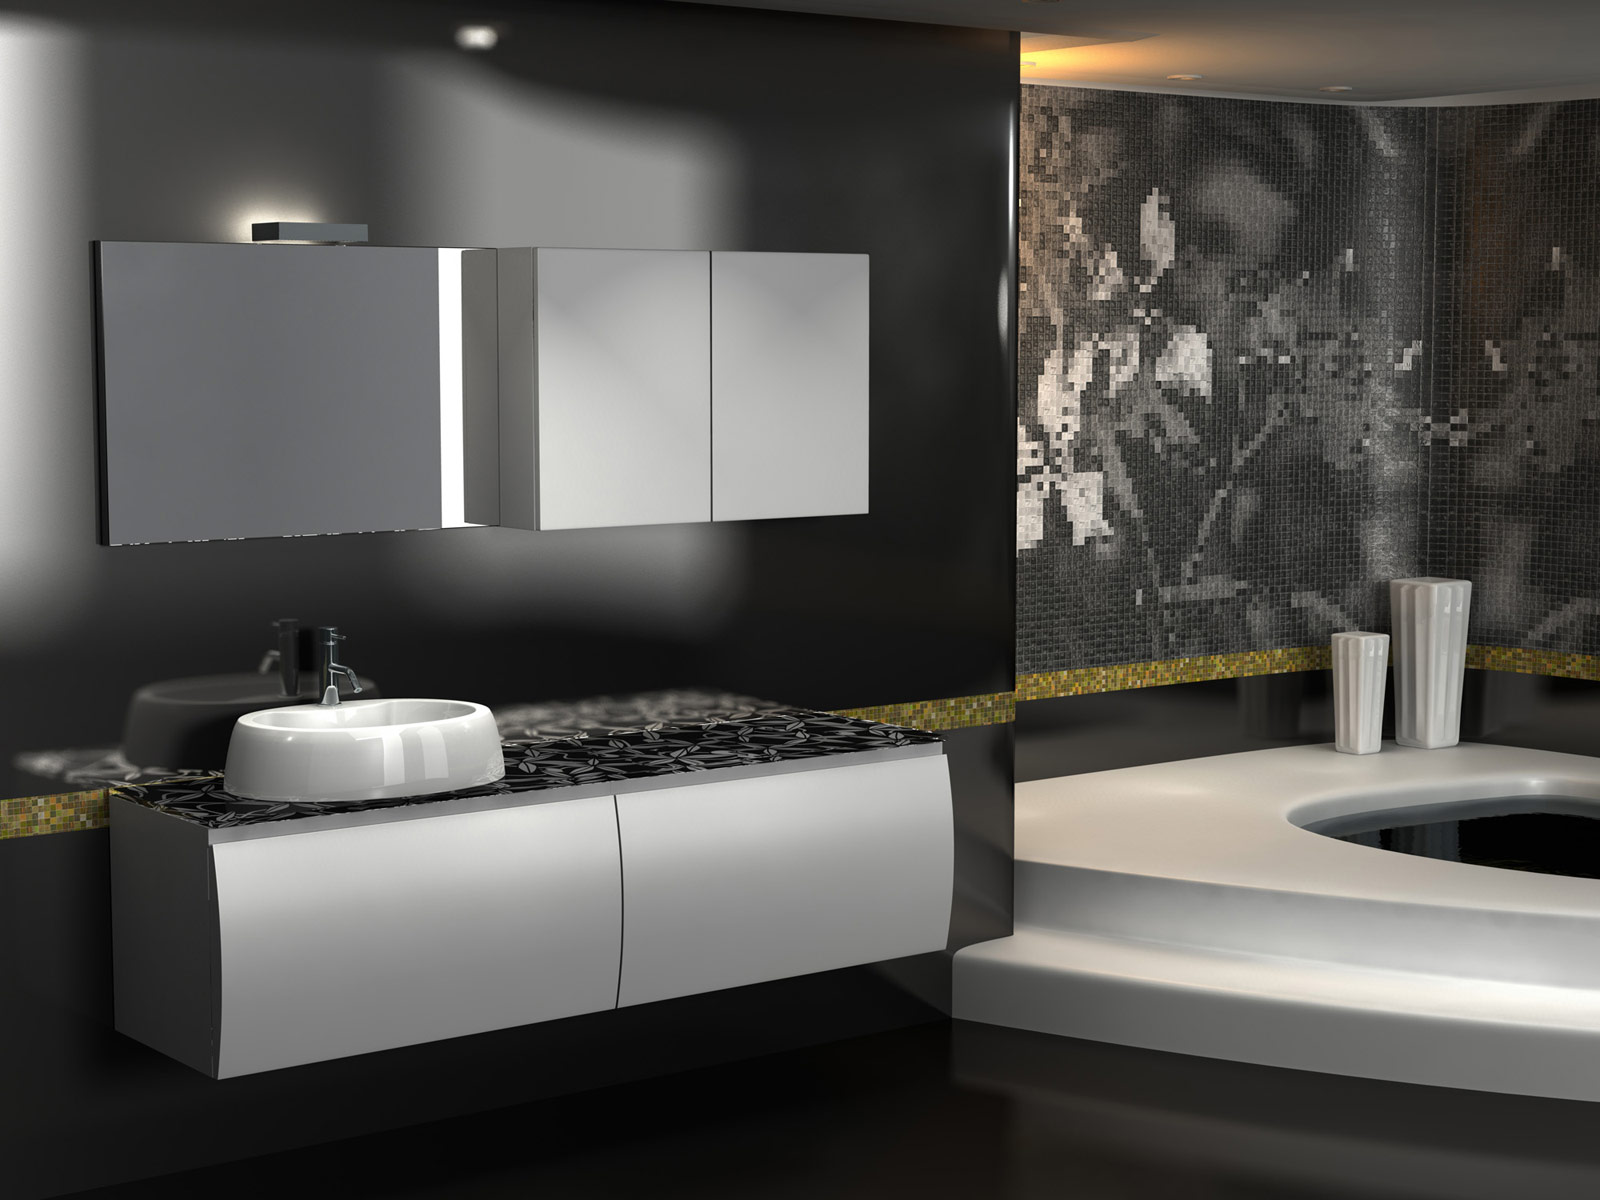 Arredo bagno design duebi italia for Design moderno